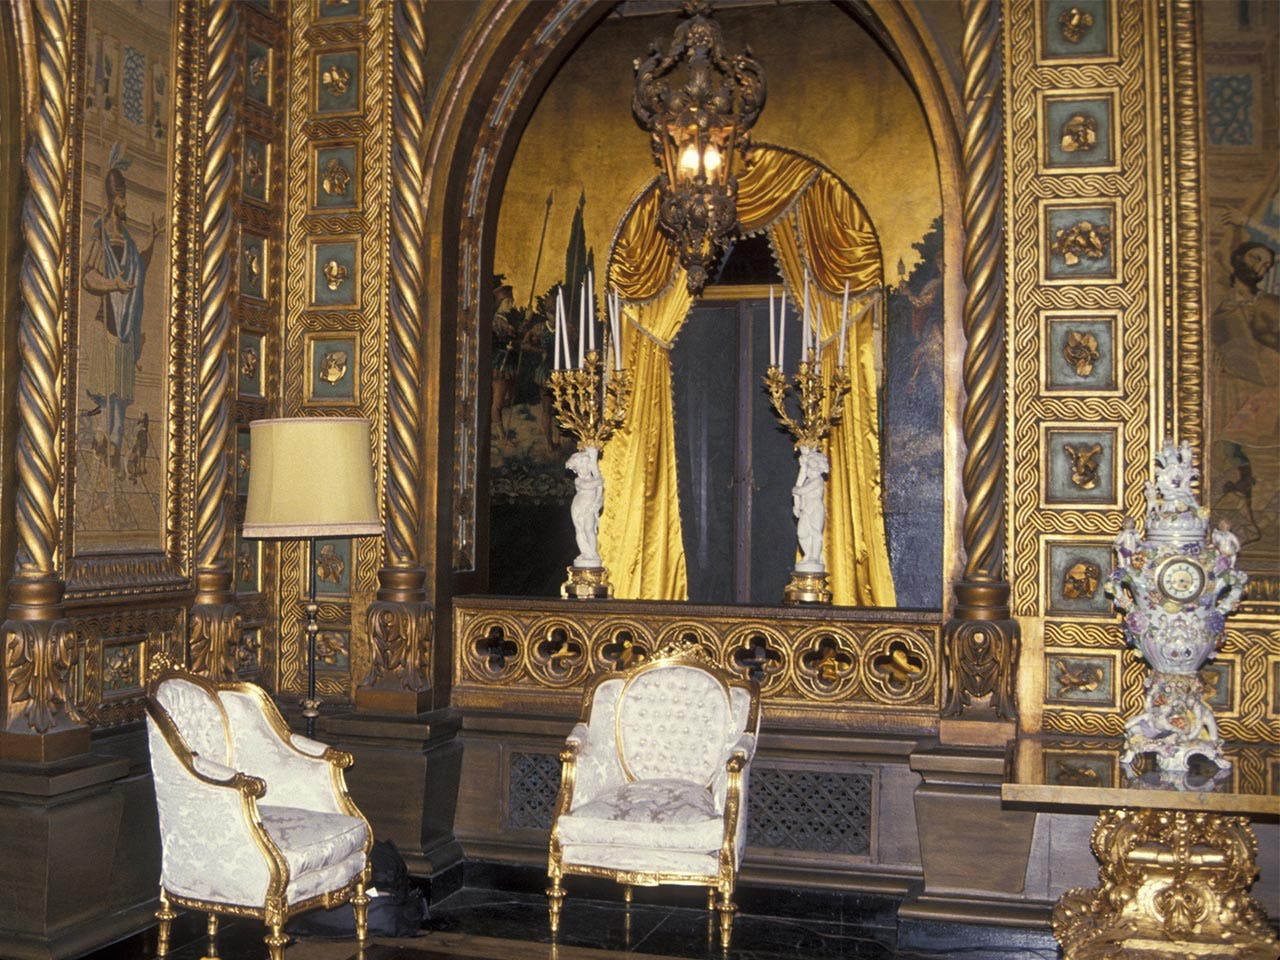 Gold gilded ceilings in Mar-a-Lago | Ron Galella, Ltd./Getty Images